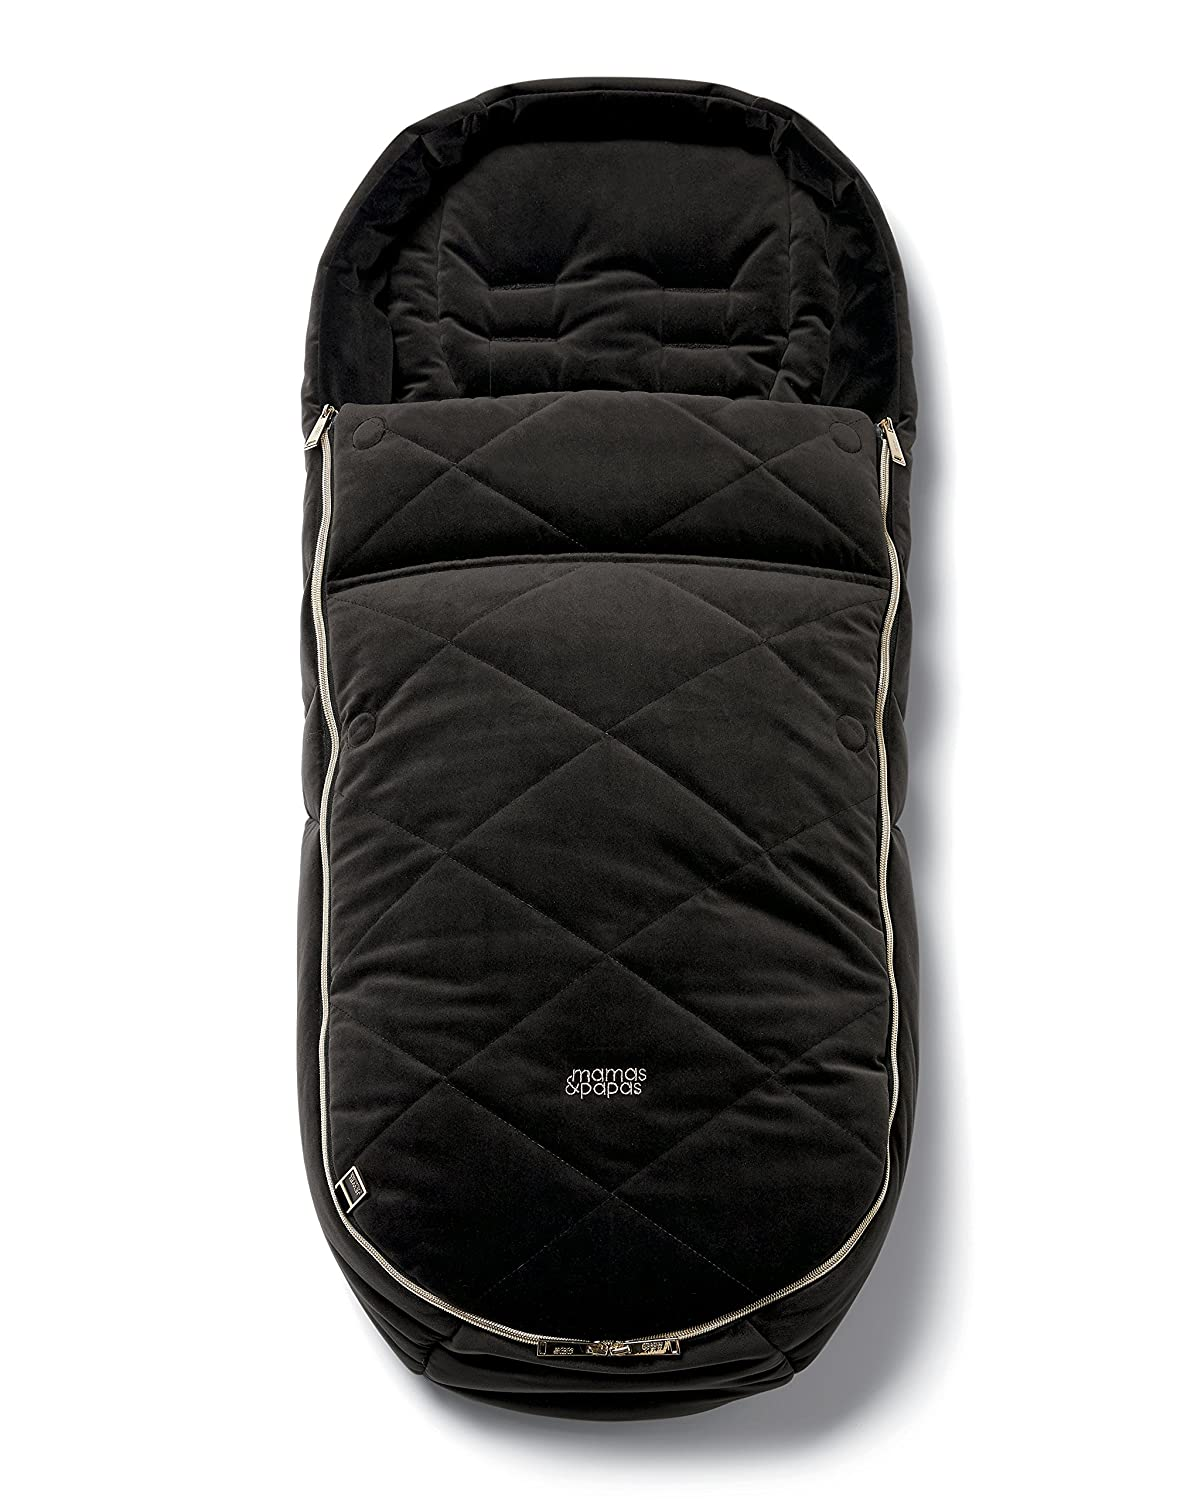 FYLO Premium Footmuff//Cosy Toes Compatible with Silver Cross Zest Ocean Blue